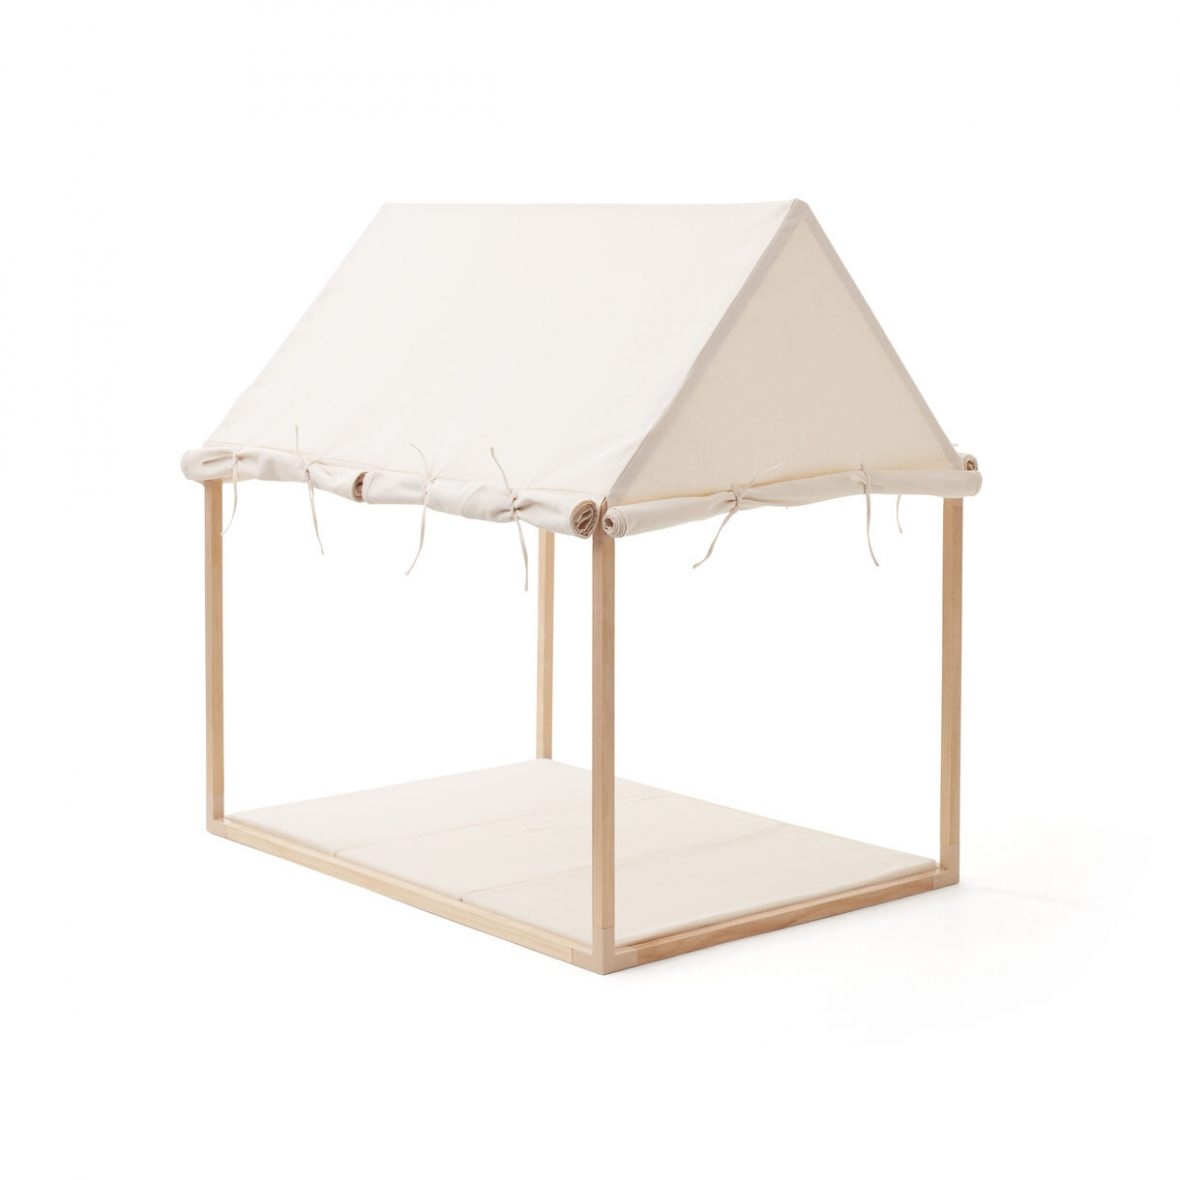 Play house tent off white_13